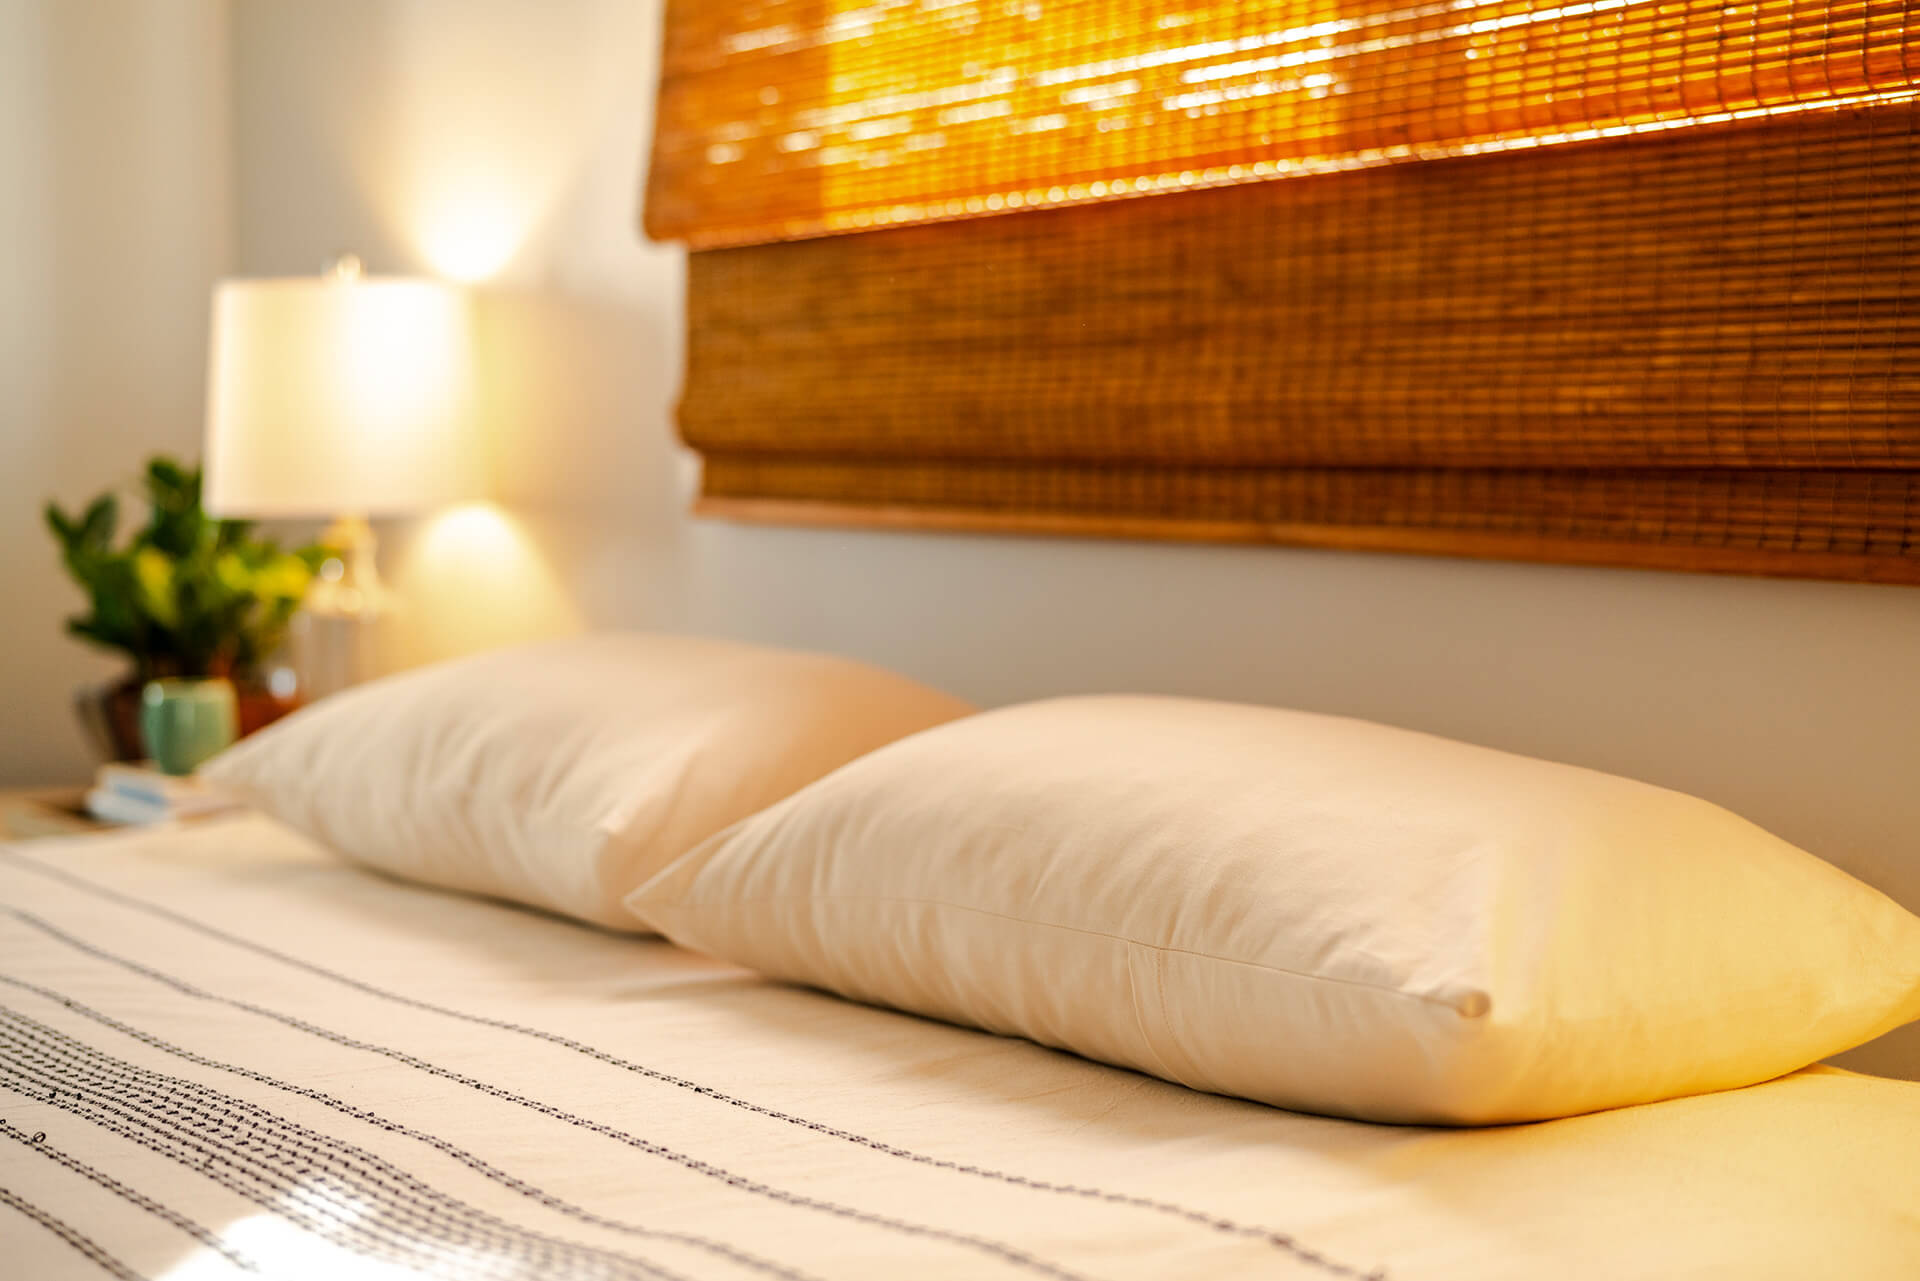 Organic Pillows made with GOLS certified organic shredded Dunlop latex